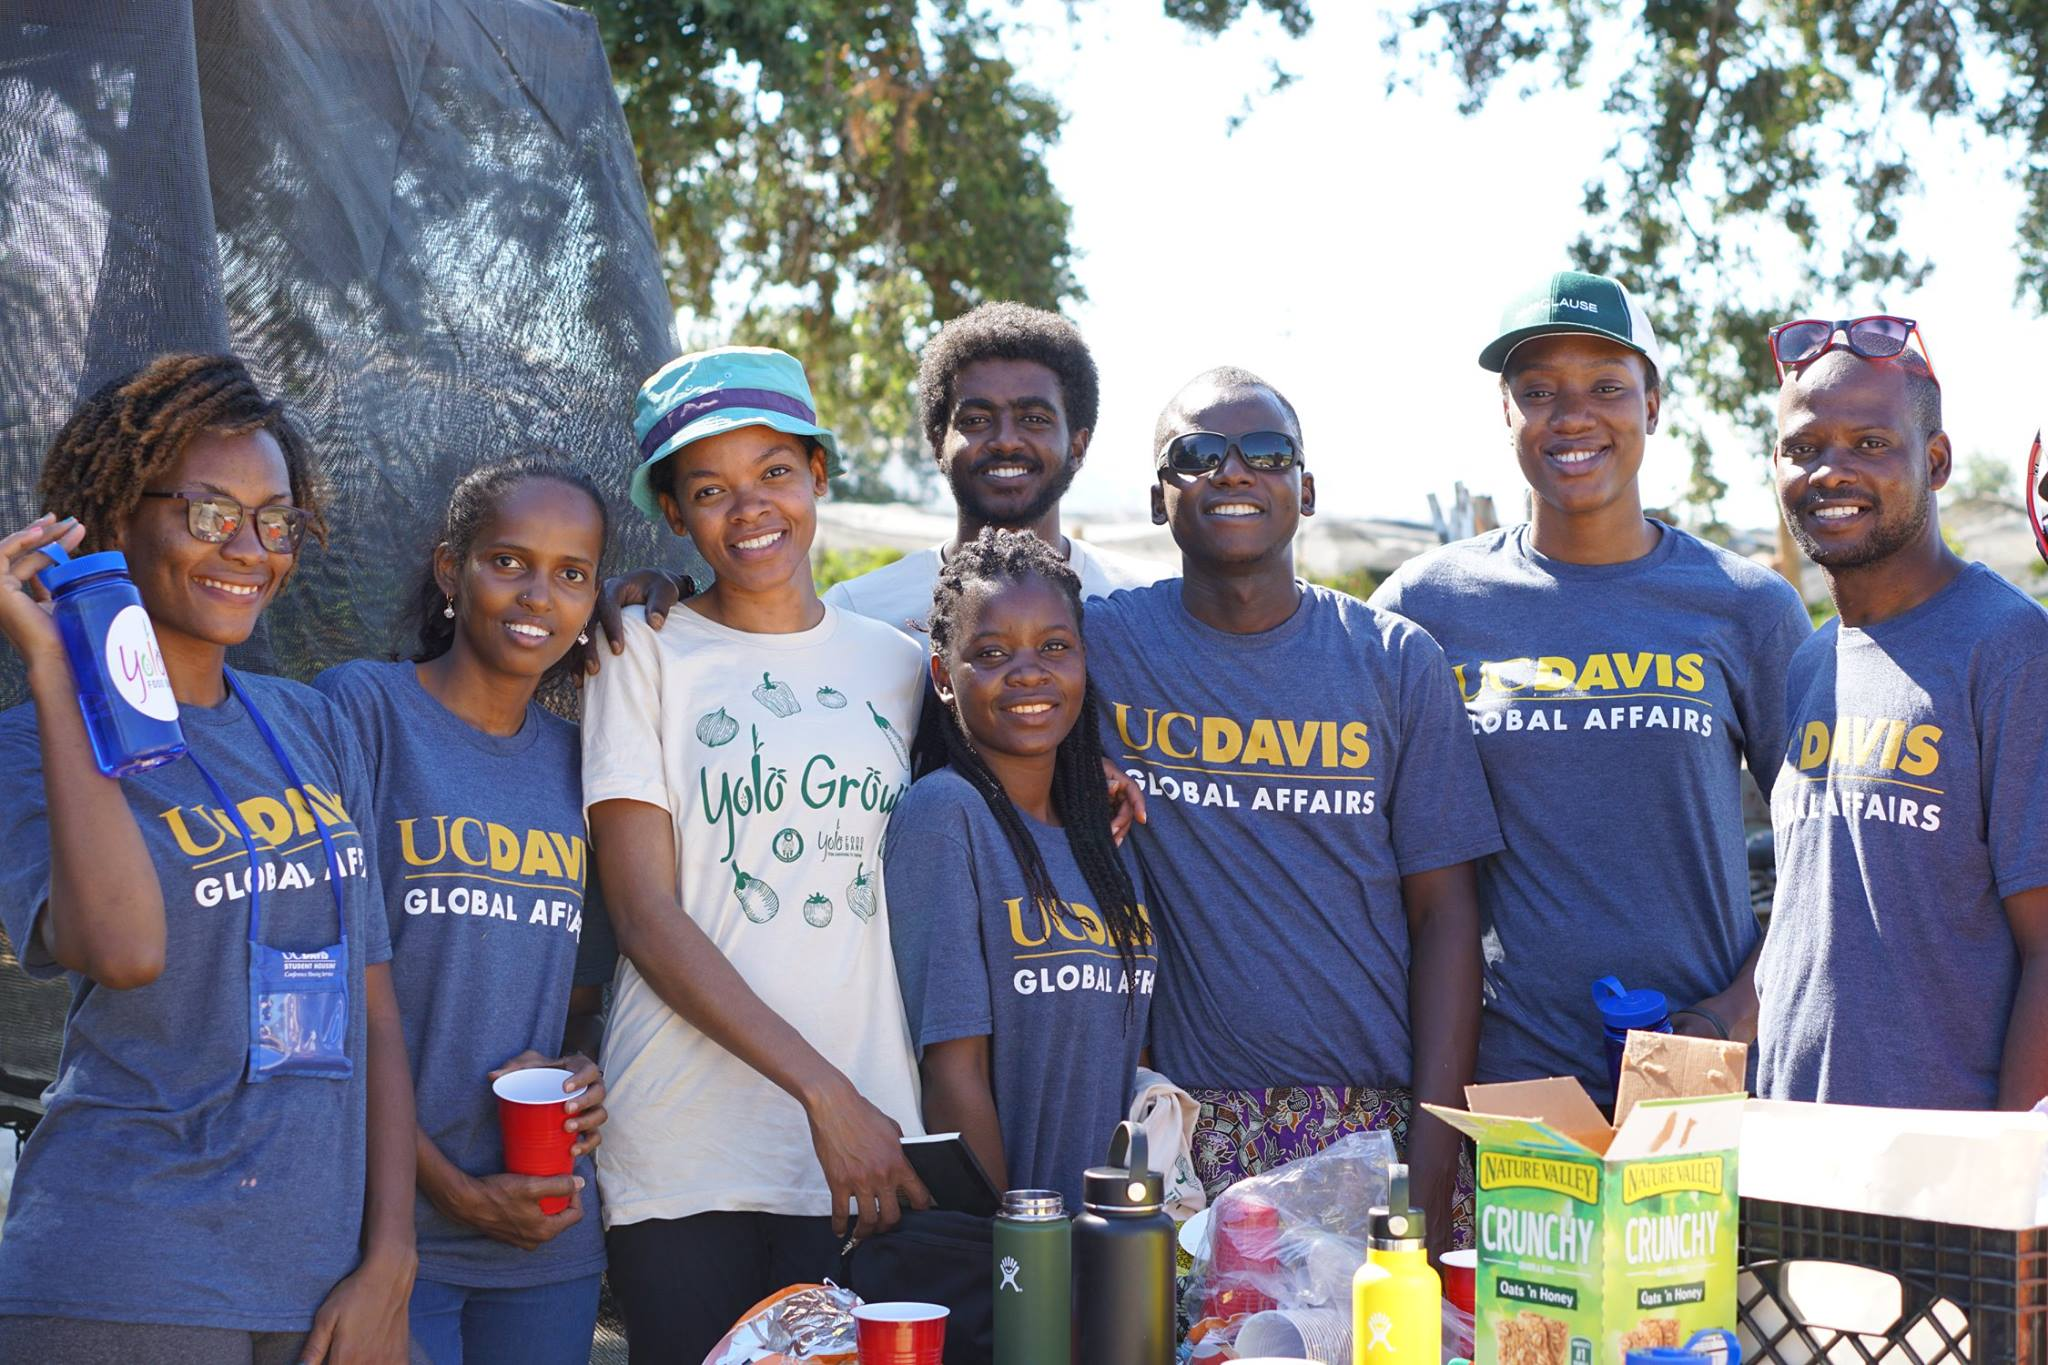 Mandela Fellows volunteering at farm